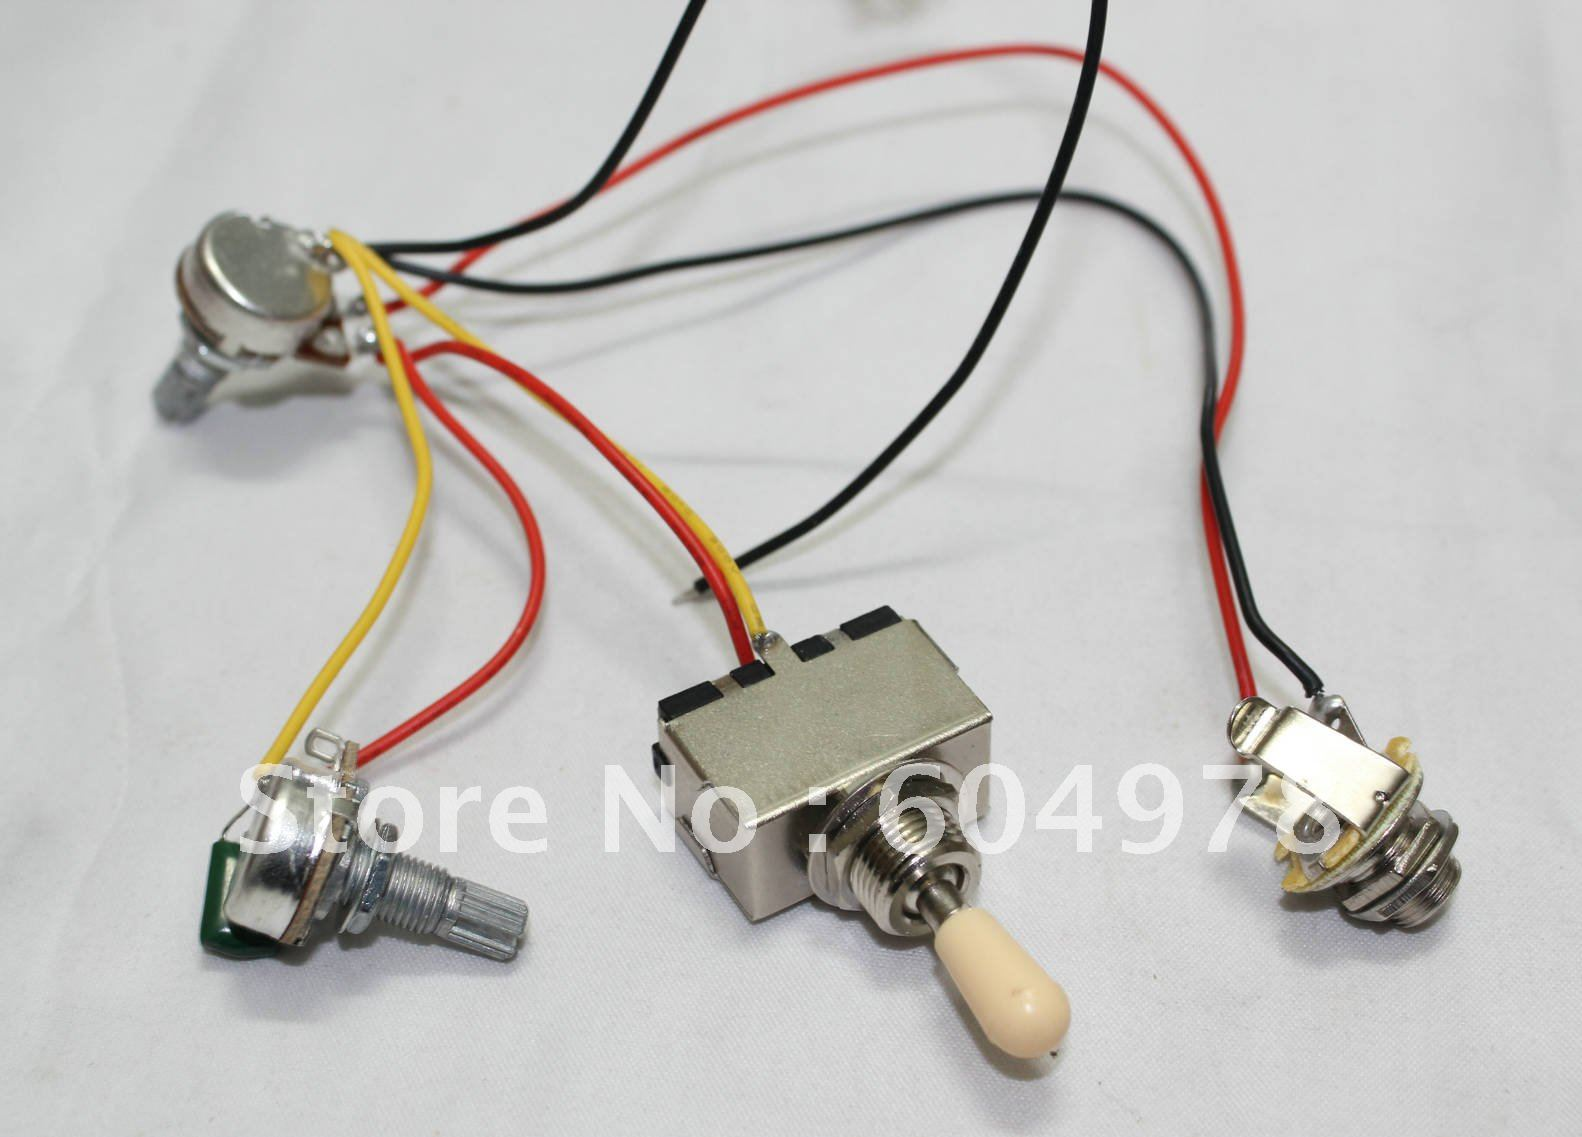 6 wire toggle switch 2003 yukon stereo wiring diagram set of guitar harness 3way 1v1t 500k